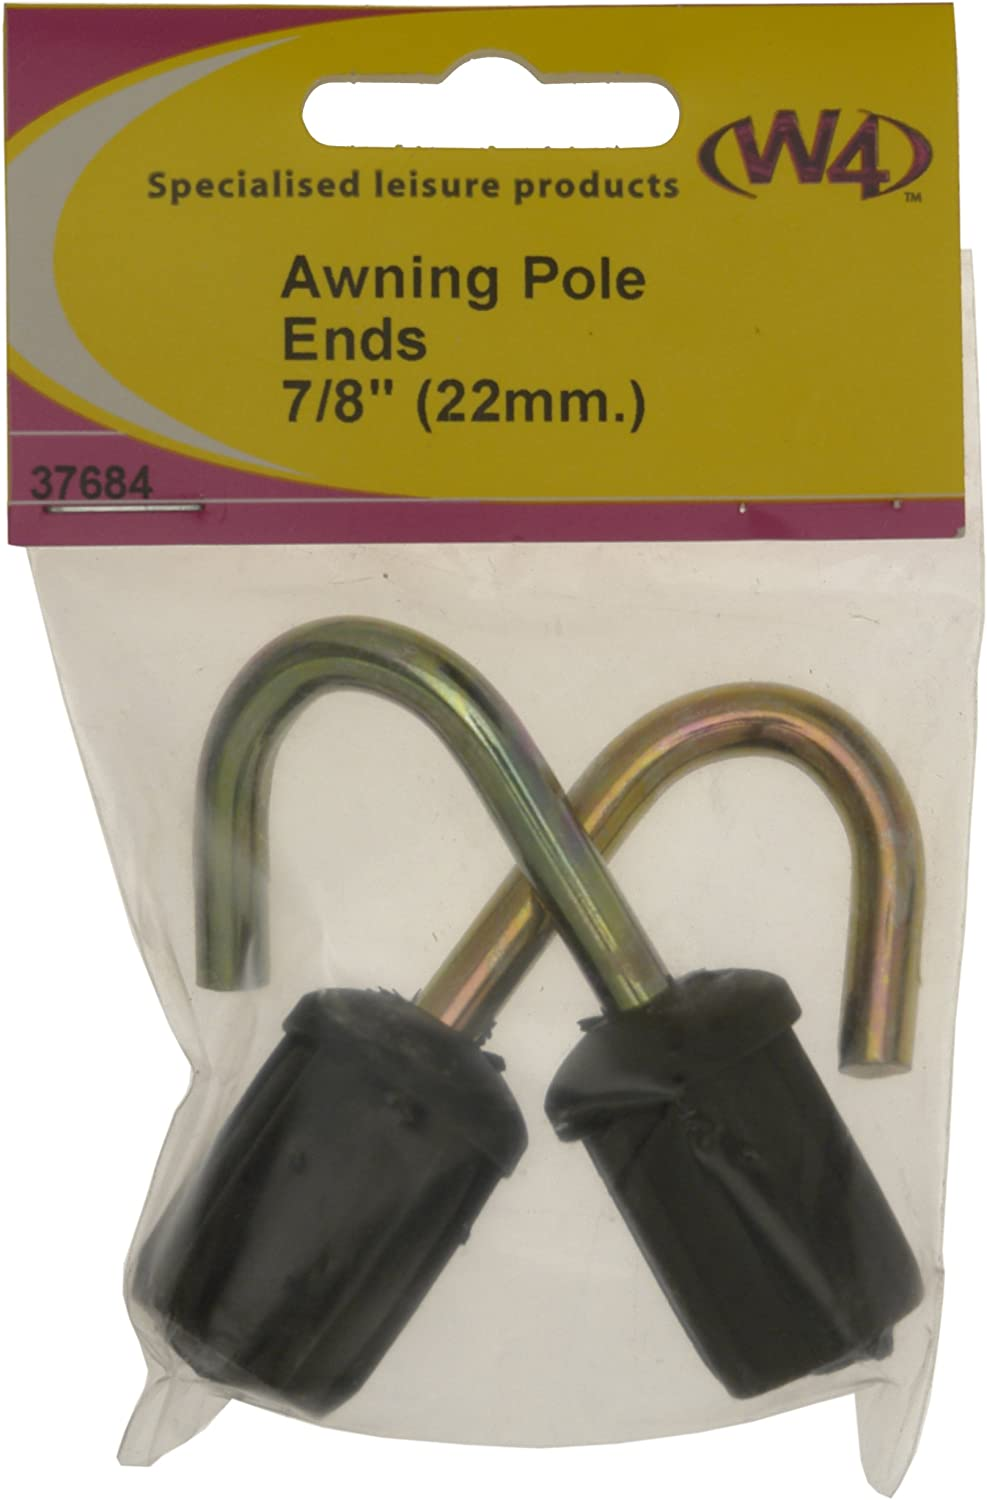 W4 Awning Pole Ends